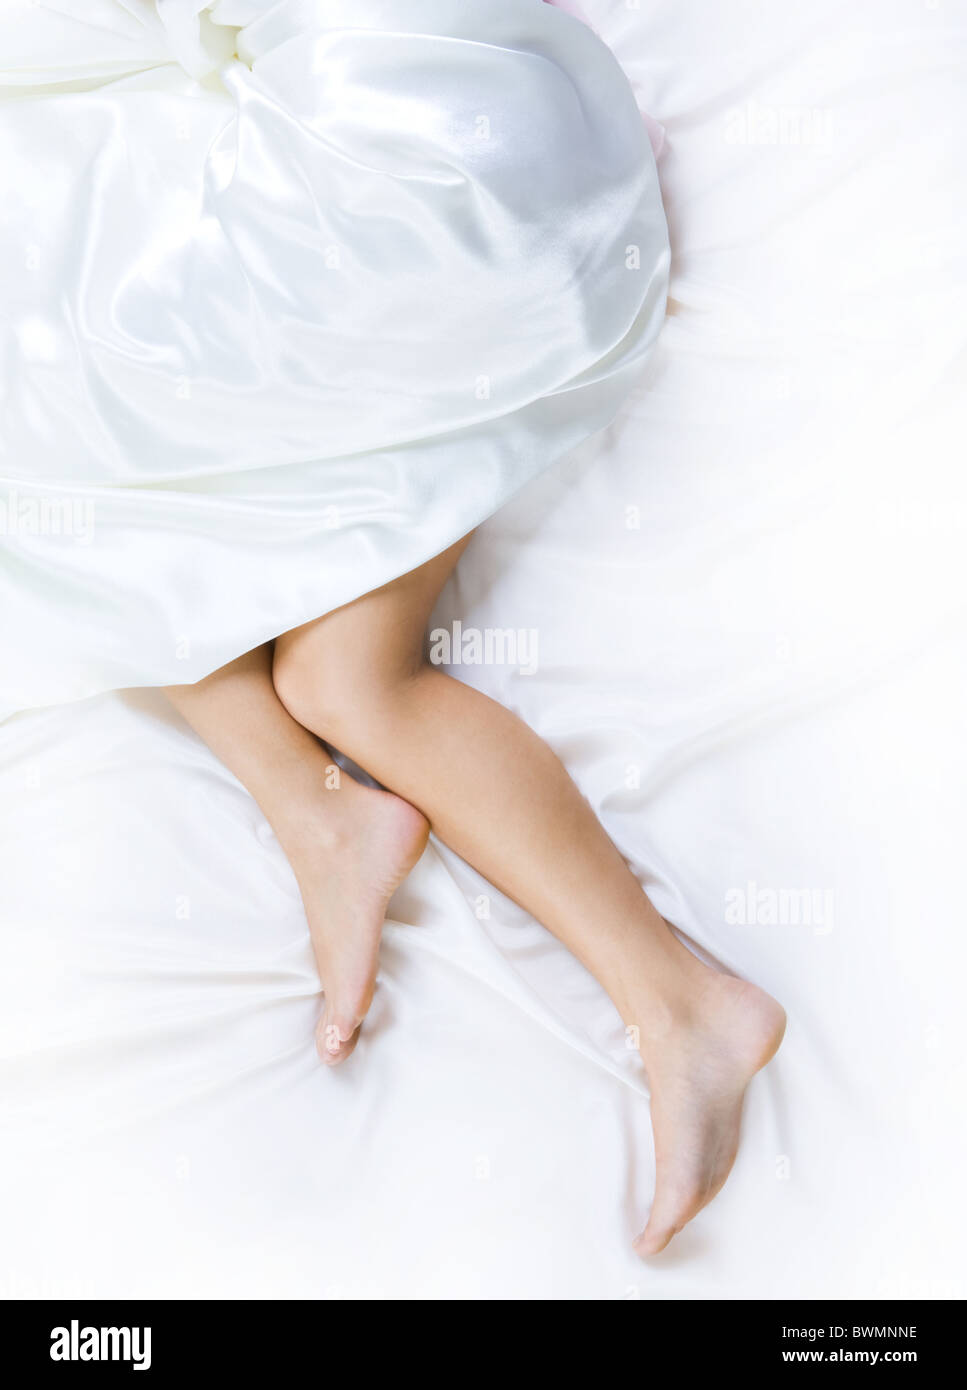 Image of barefooted female legs pointing out of white silk blanket - Stock Image